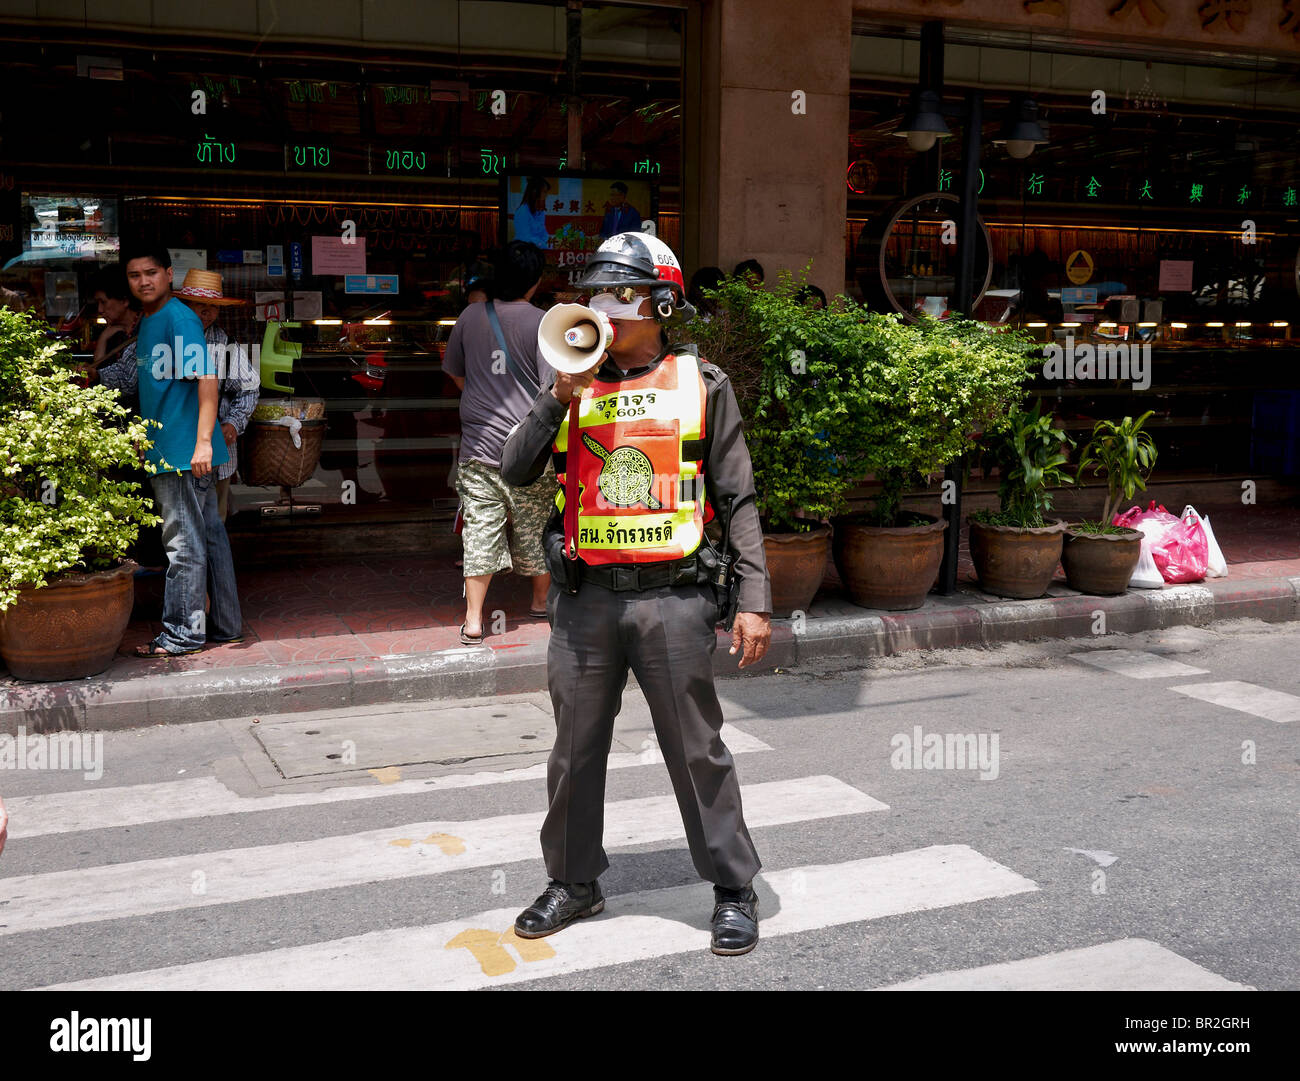 Thai police officer using a bull horn to control traffic in the noisy Bangkok city centre. Thailand S. E. Asia - Stock Image